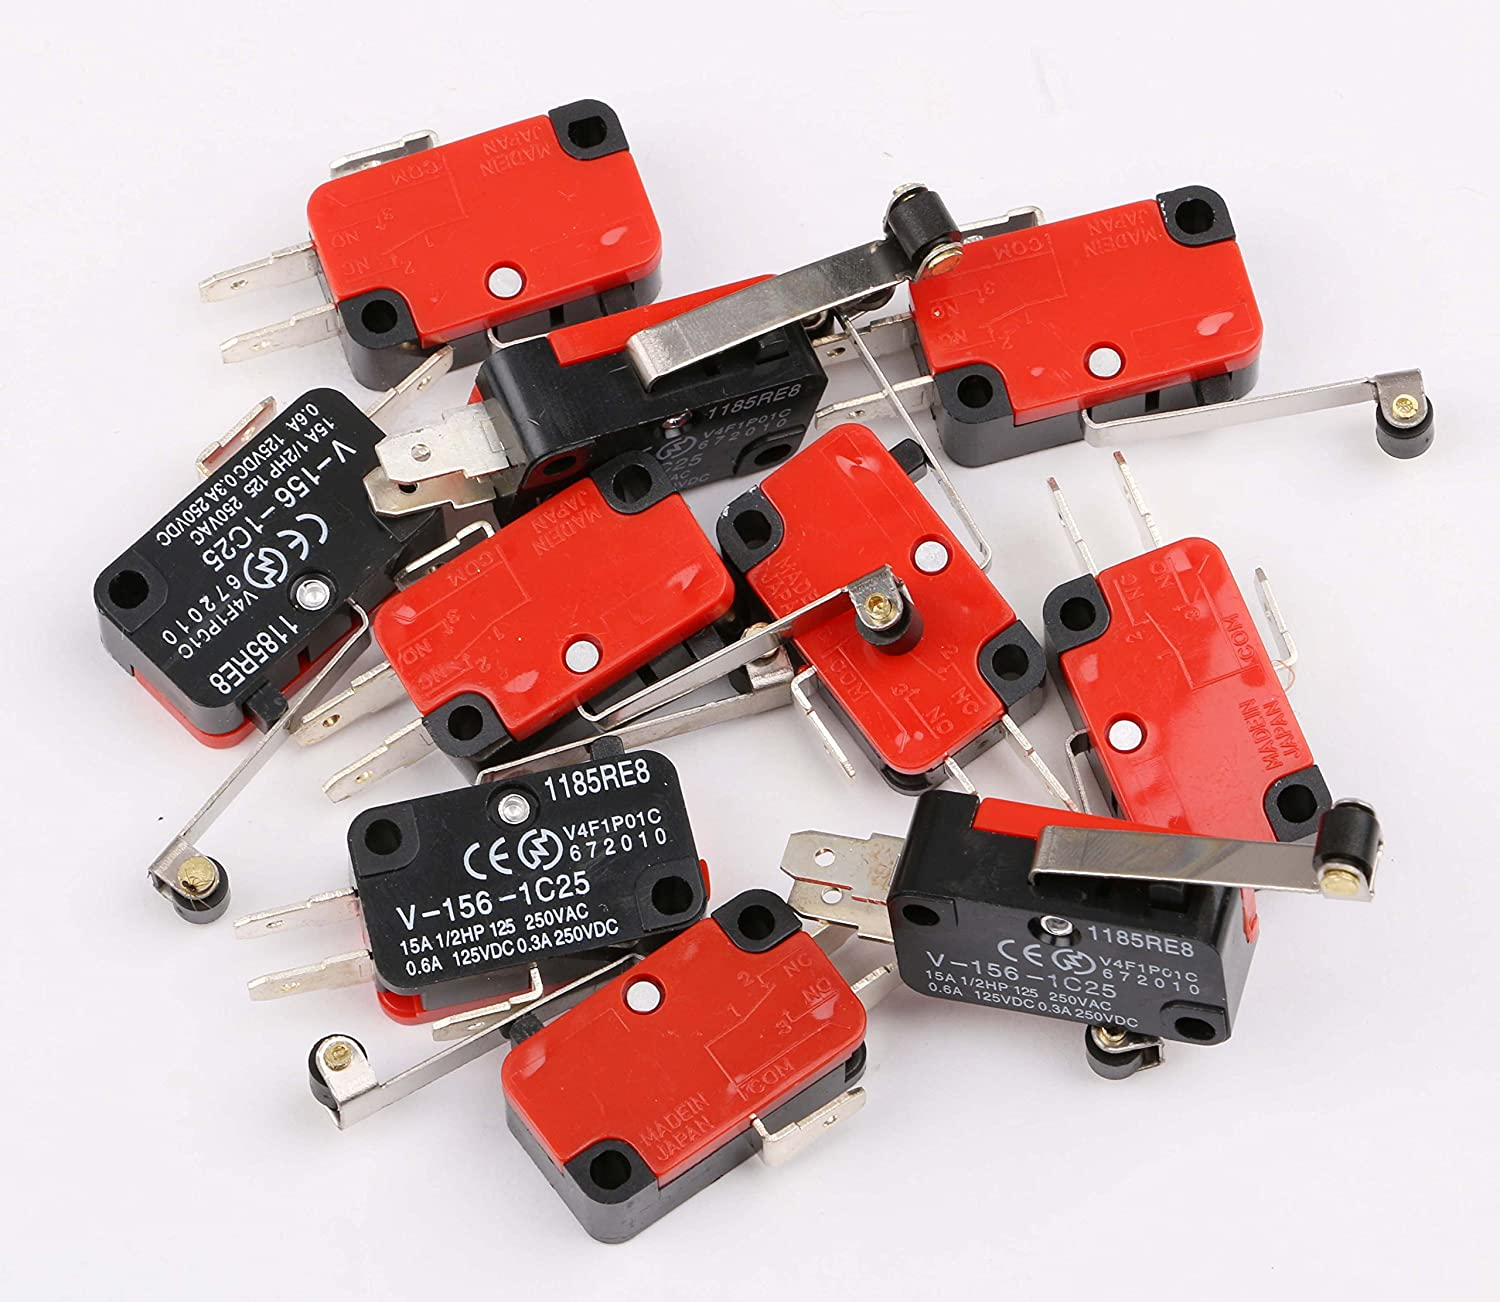 Micro Limit Switches Sdootauto 10 Pcs Momentary Miniature Limit Switches 15A V-156-1C25 2 Pins Long Hinge Roller Lever Plunger Snap Action SPDT NO//NC